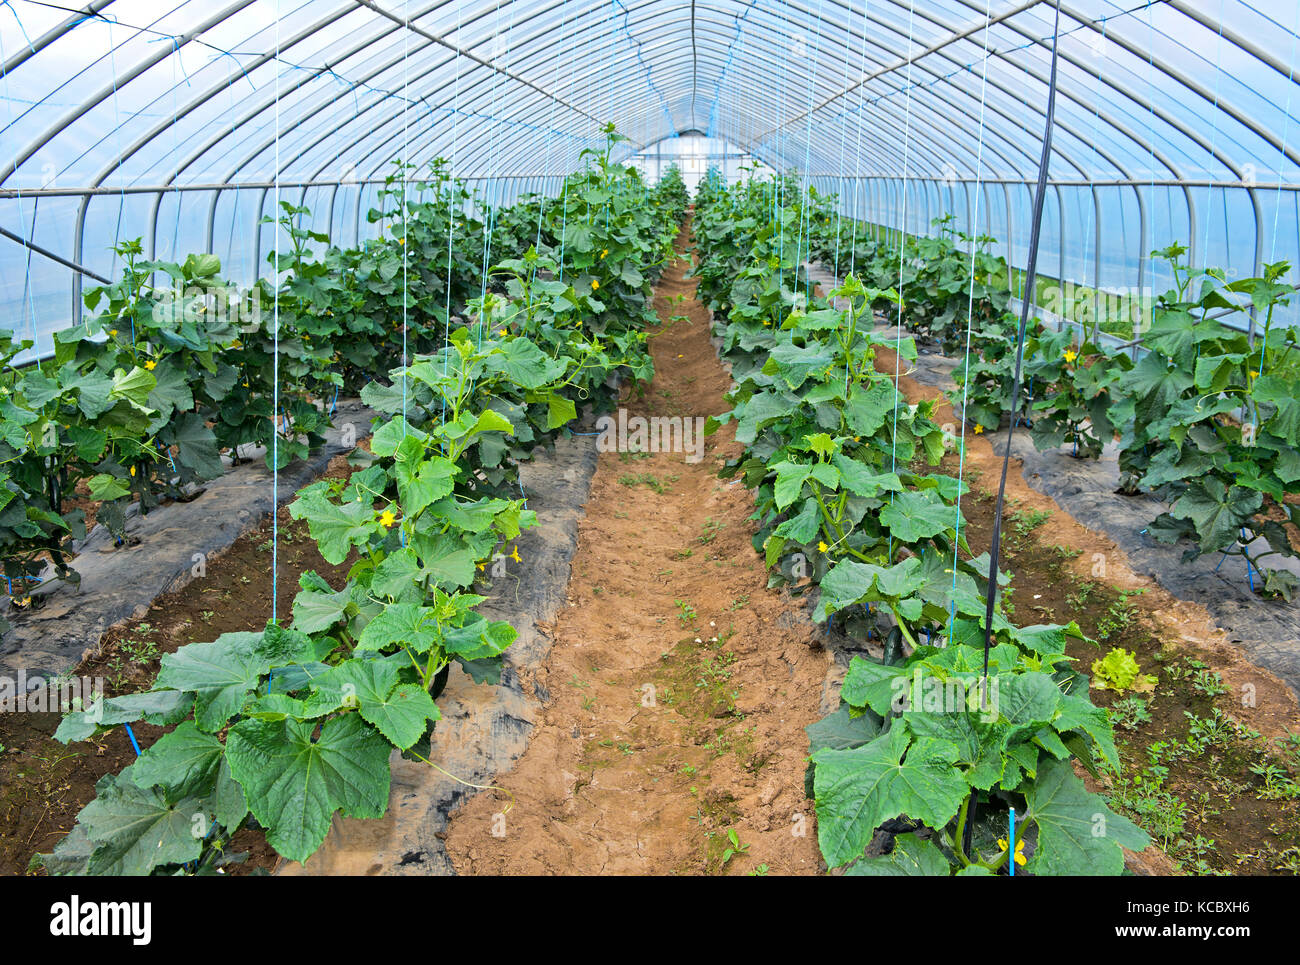 Cucumber cultivation in the foil tunnel, Everyday Farm LLC, Songino Khairkhan, Mongolia - Stock Image